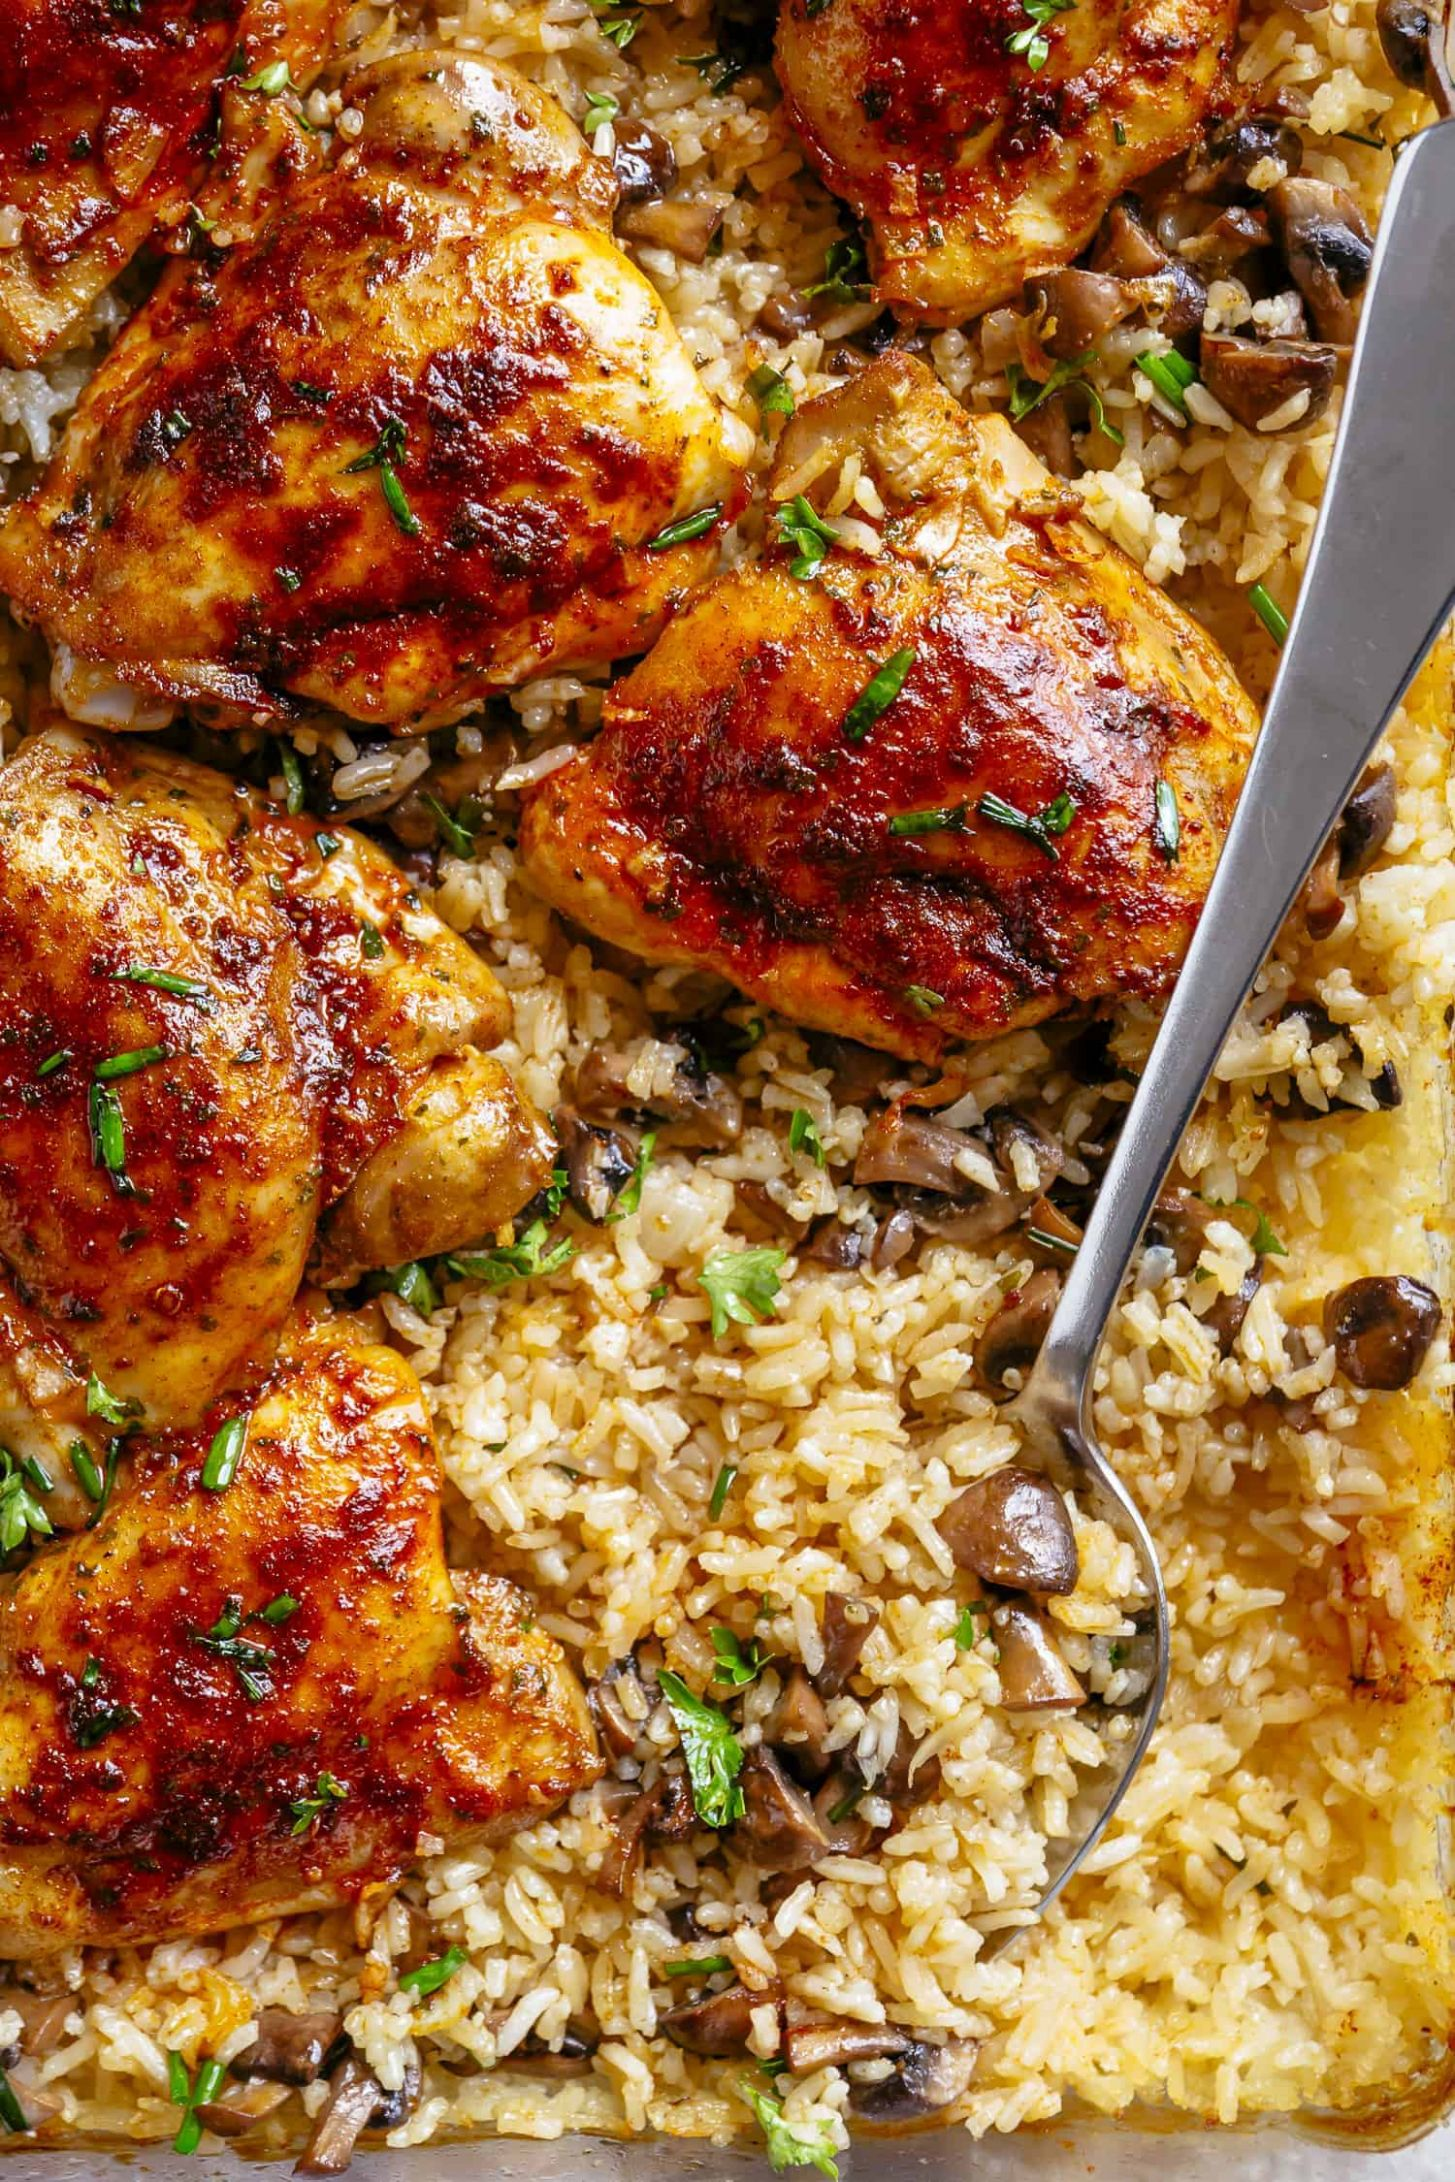 Oven Baked Chicken and Rice - Recipes Chicken Breast And Rice